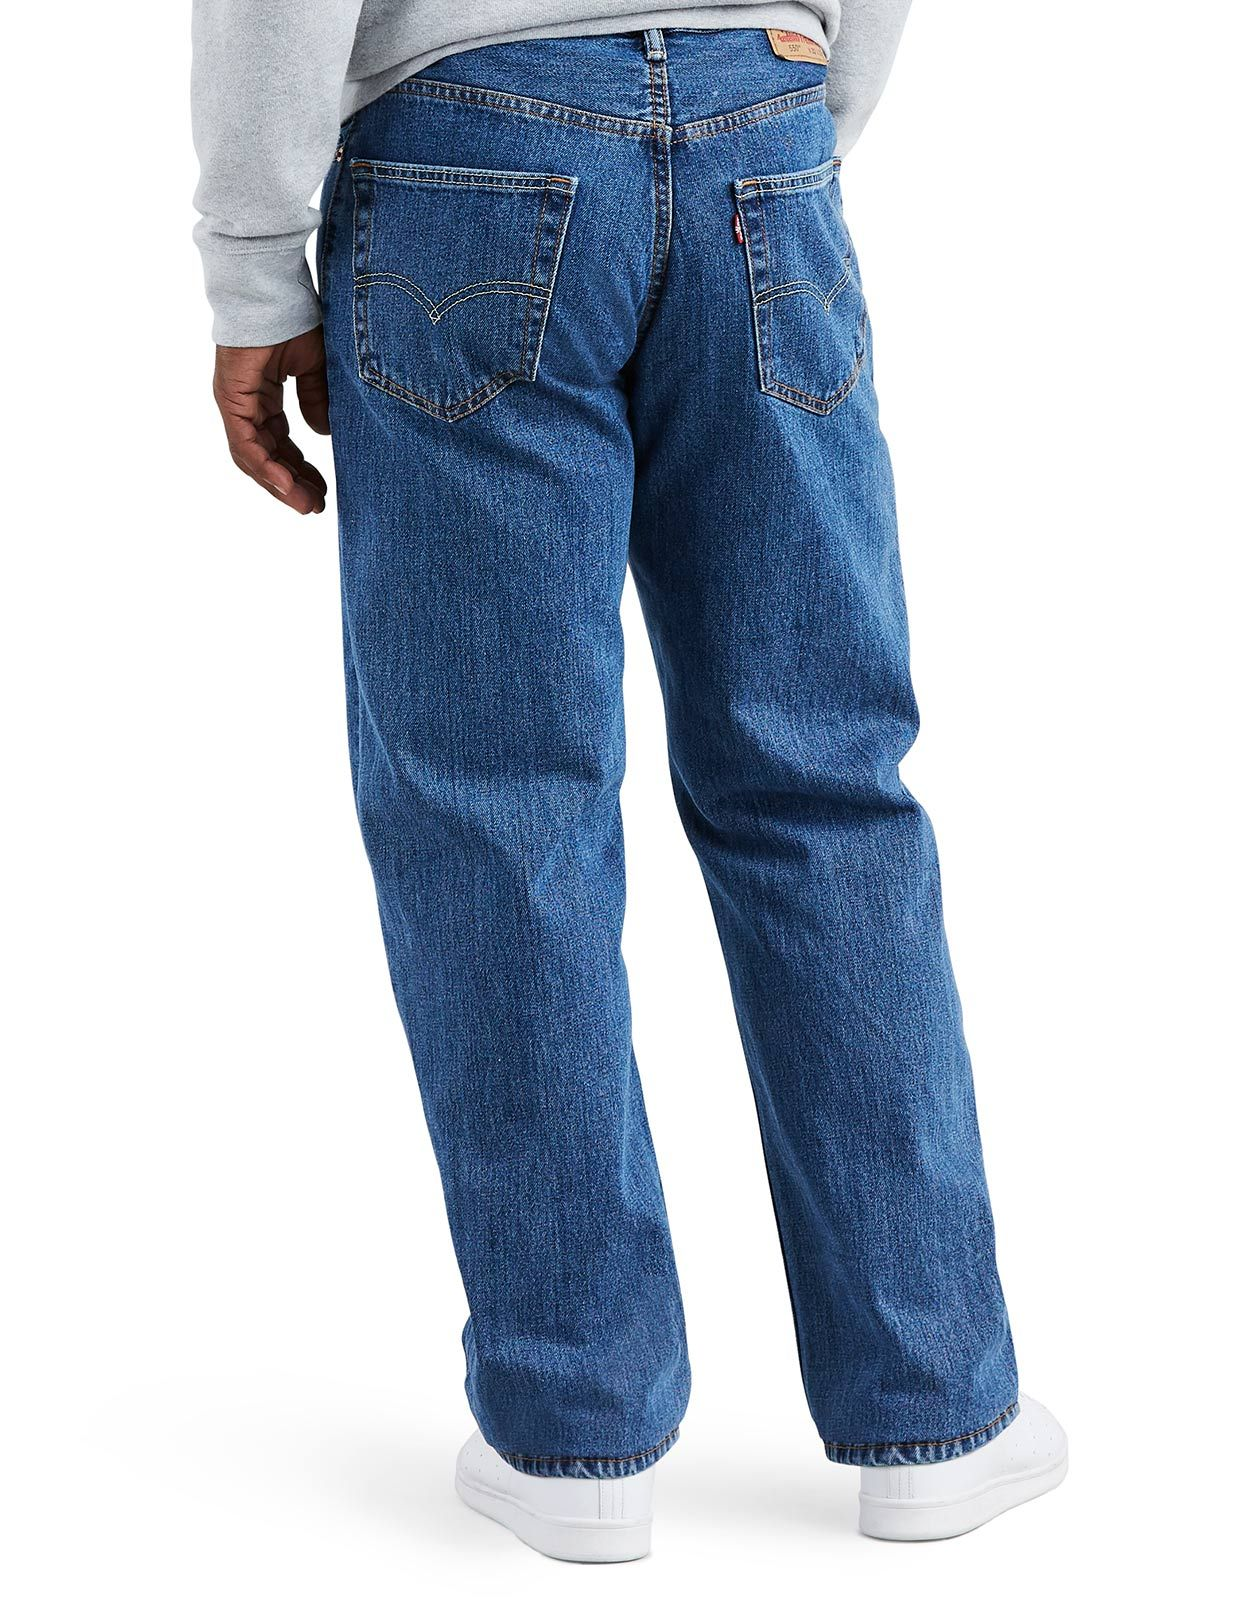 Levi's Men's 550 Relaxed Mid Rise Relaxed Fit Tapered Leg Jeans - Medium Stonewash